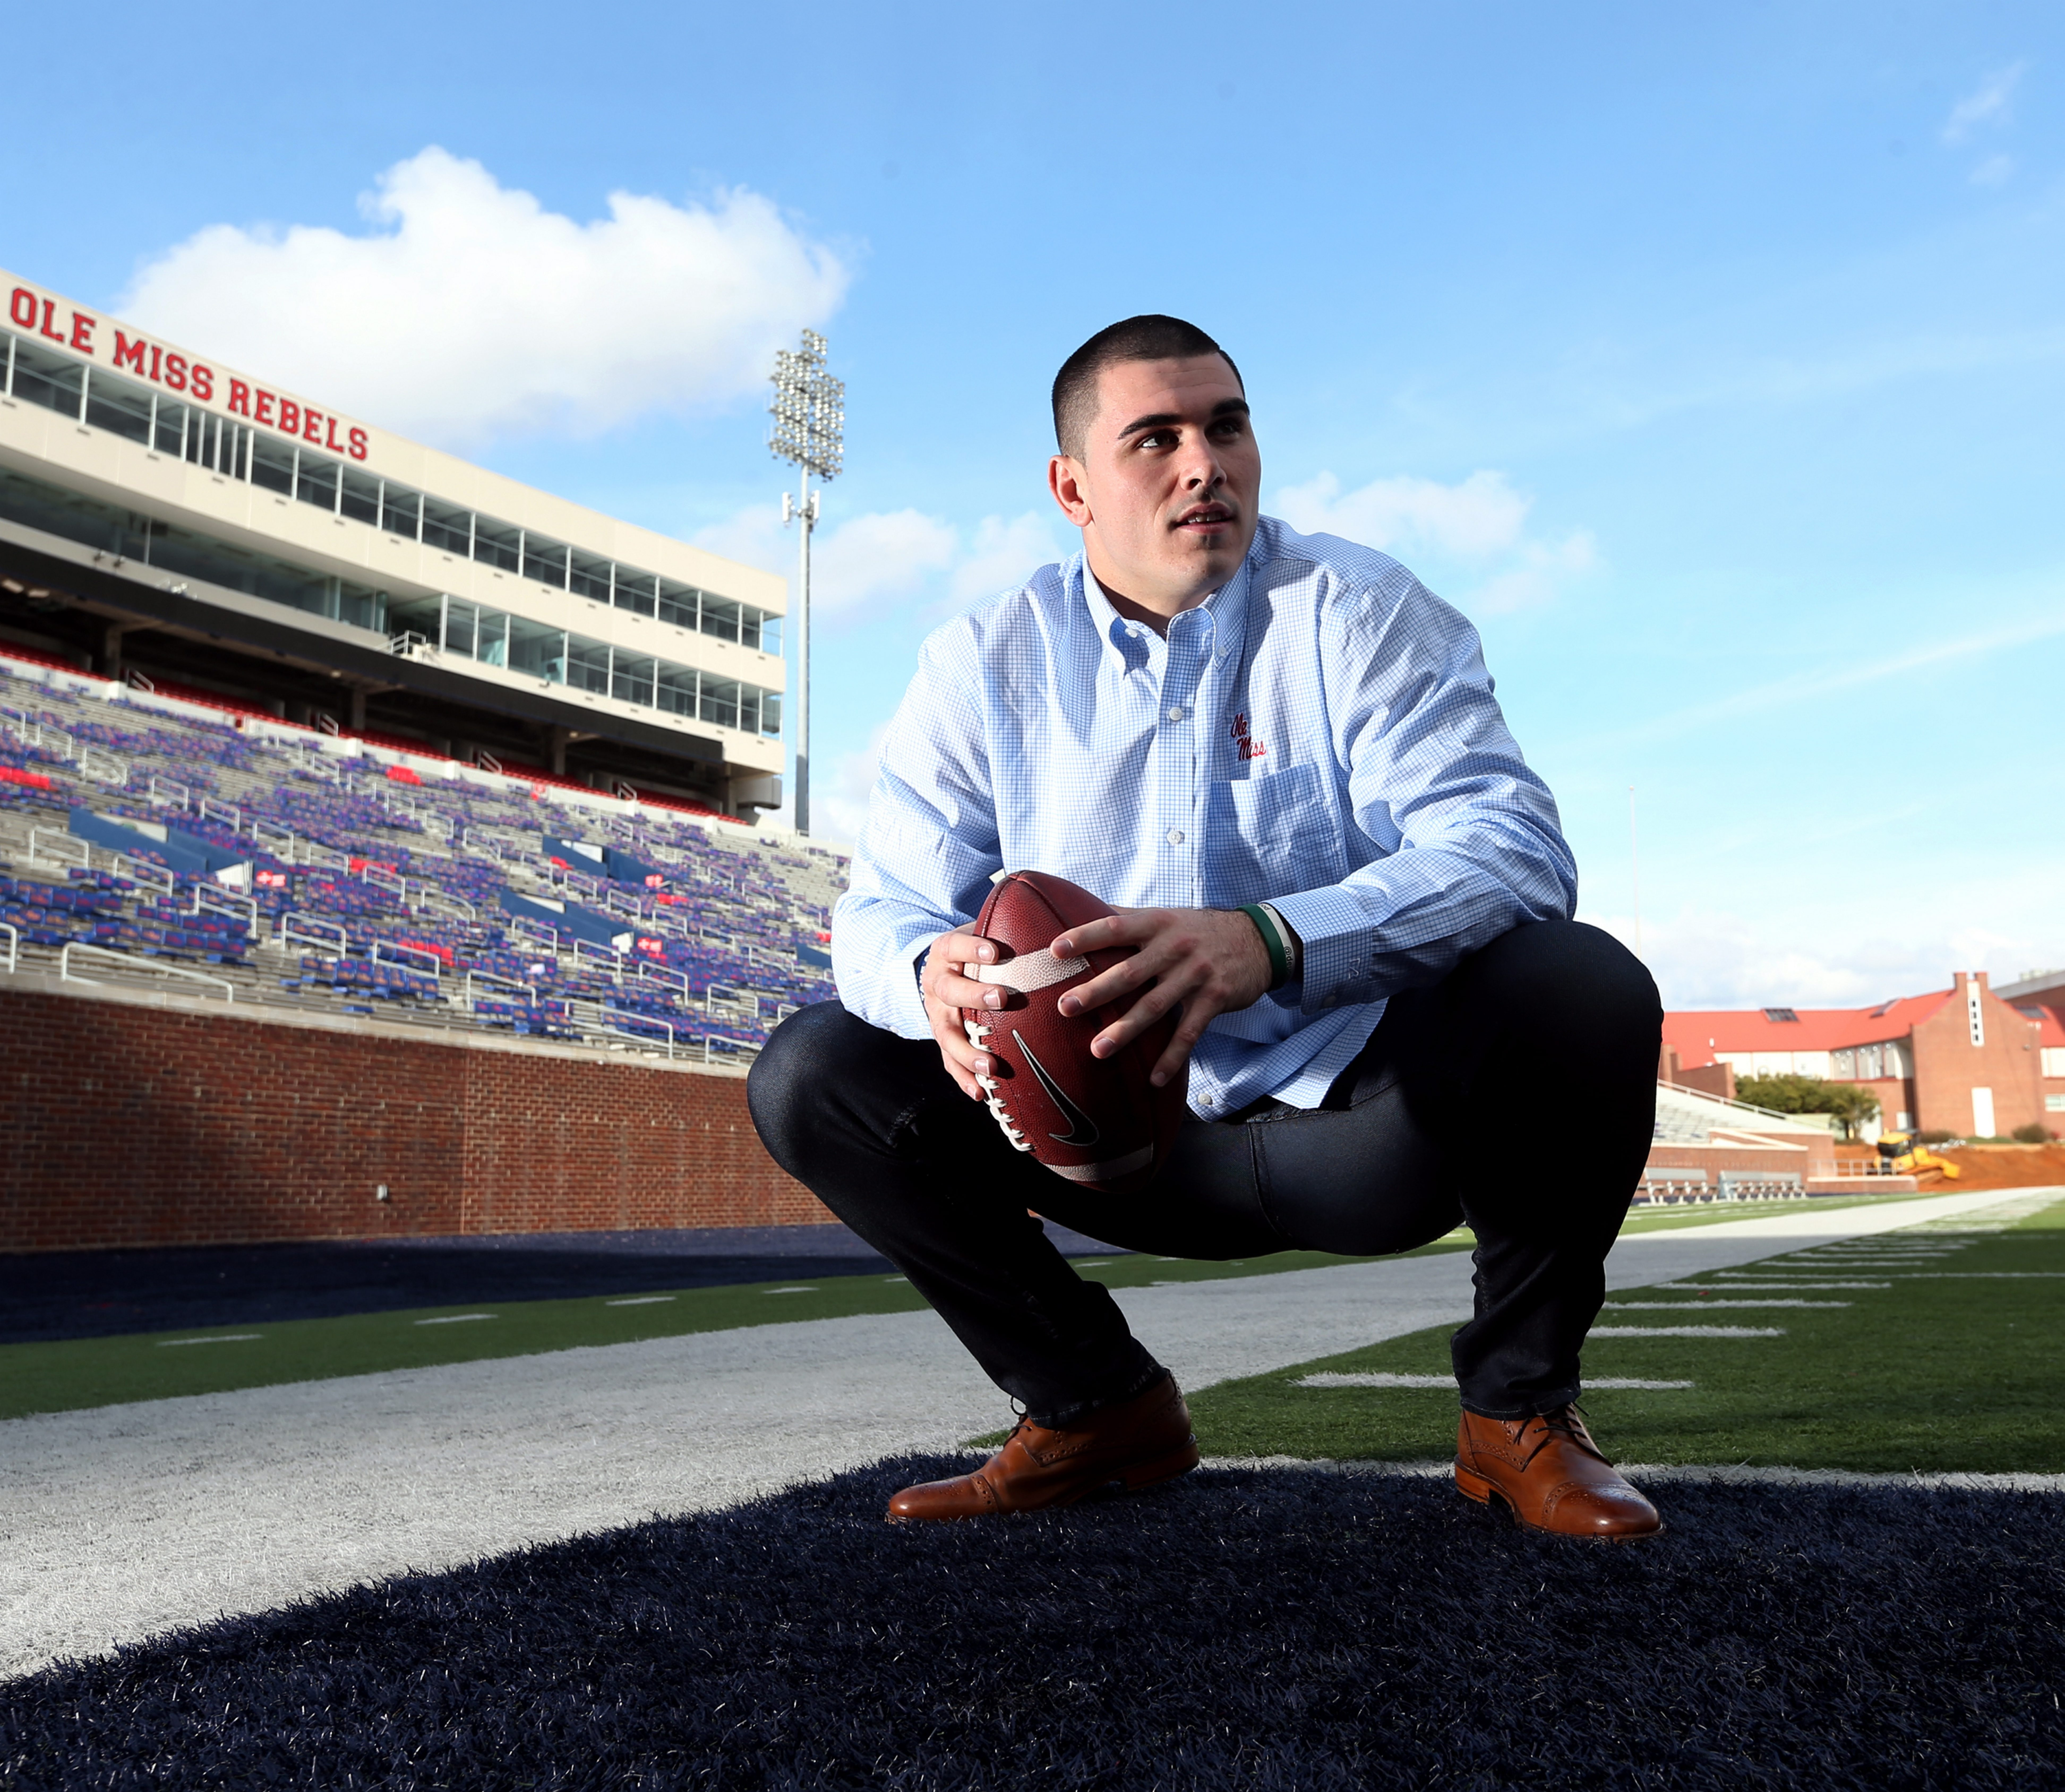 Chad Kelly has vaulted himself to the top of the college football world as the quarterback at the University of Mississippi, an SEC powerhouse whose quarterback alumni include Archie and Eli Manning. For the first time in 46 years, the Rebels will play in the Sugar Bowl. They will meet the Oklahoma State Cowboys on Jan. 1.